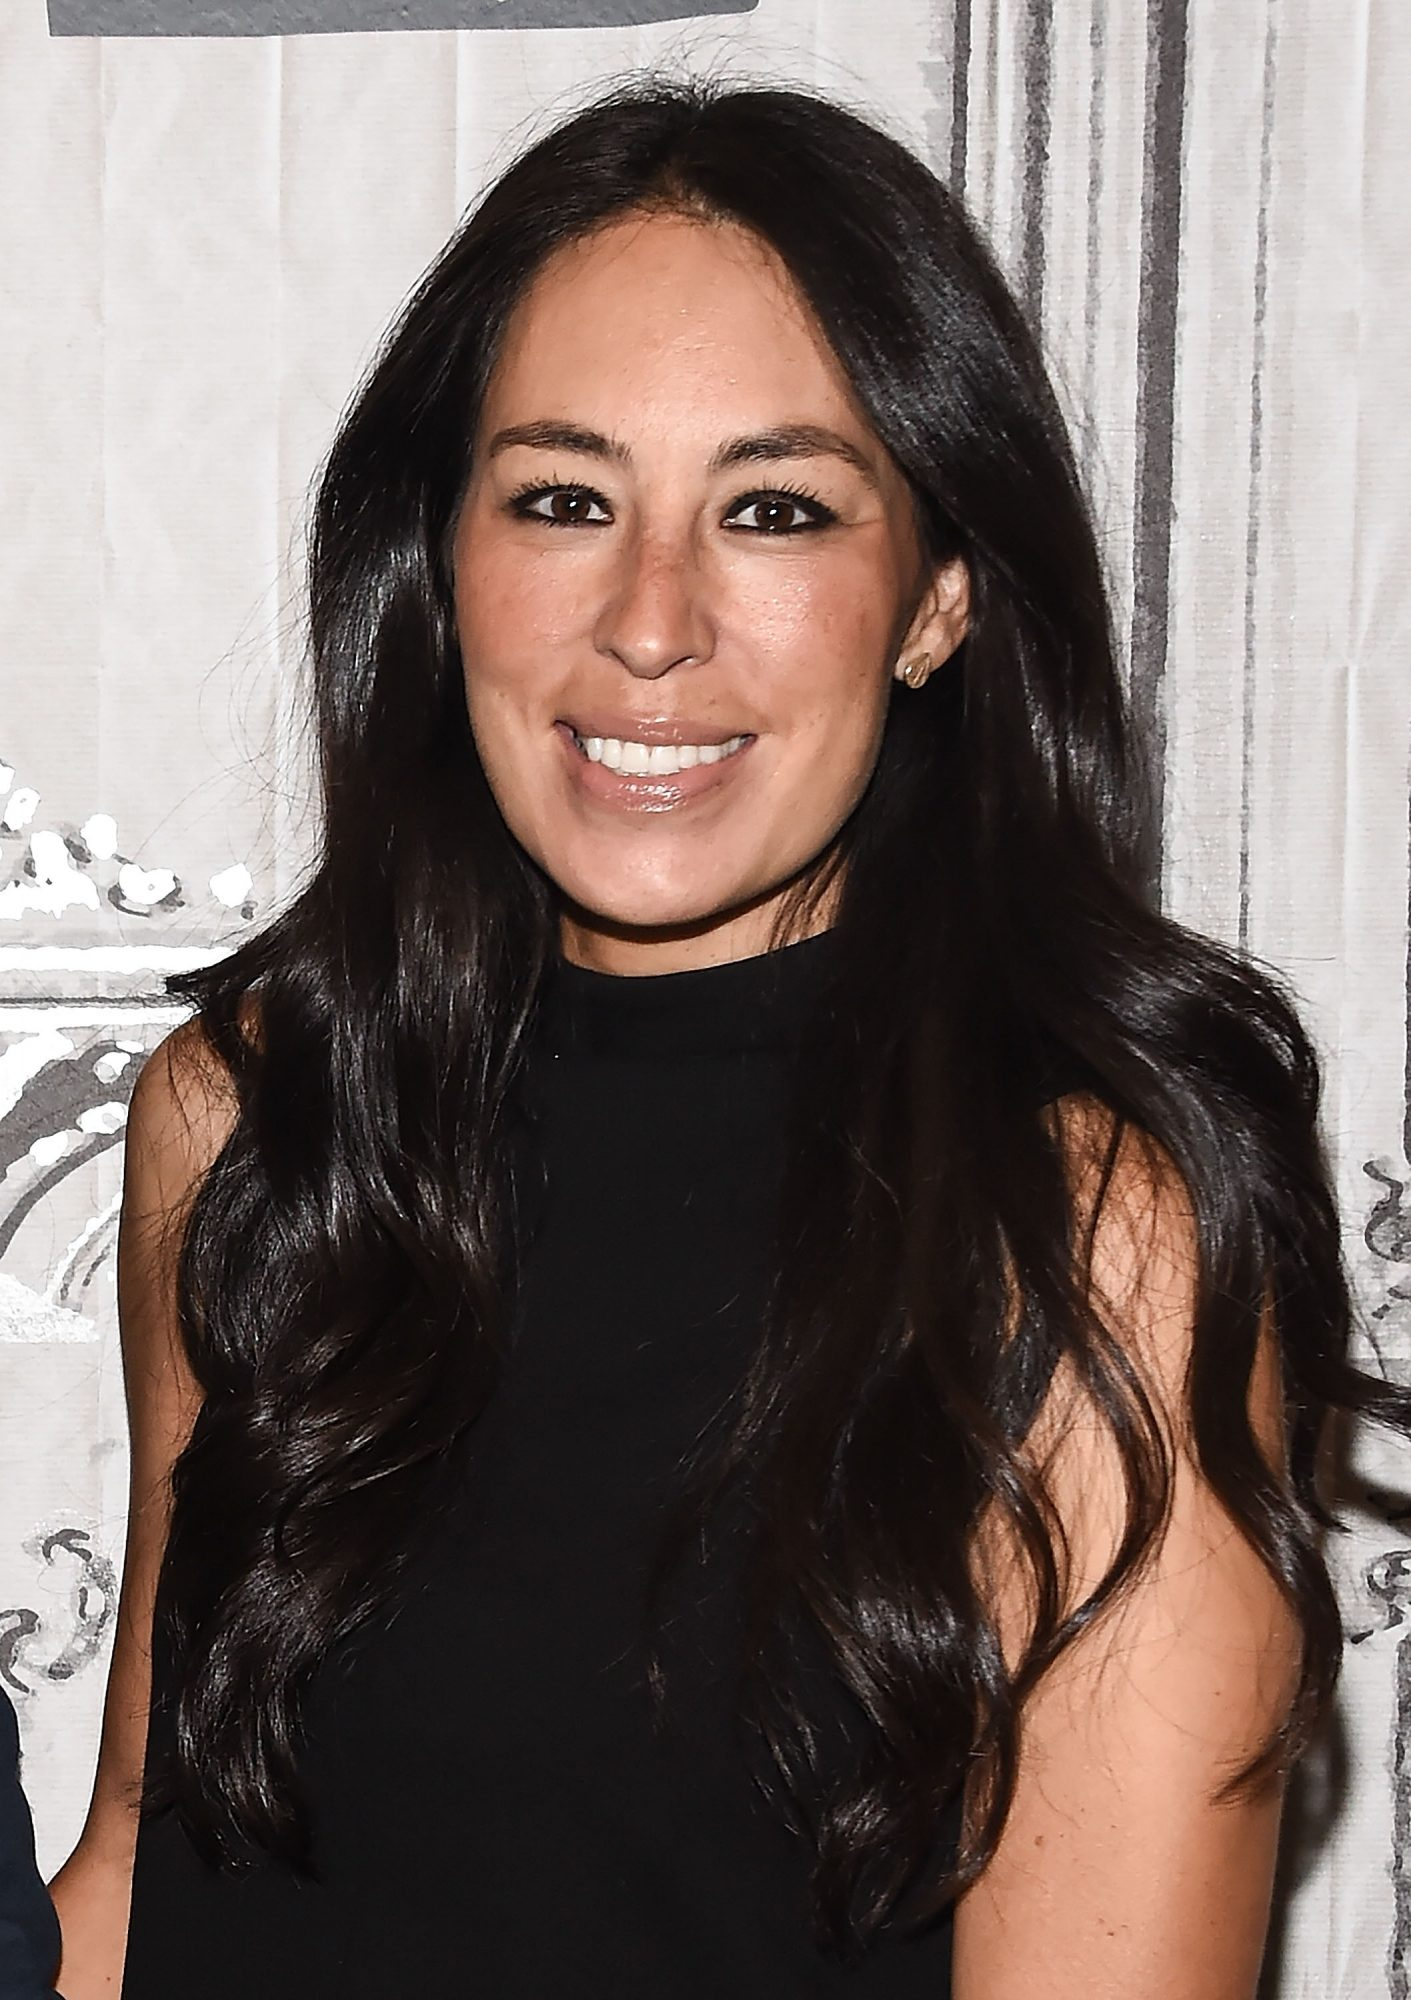 Did You Catch Joanna Gaines' Newest Accessory On Fixer